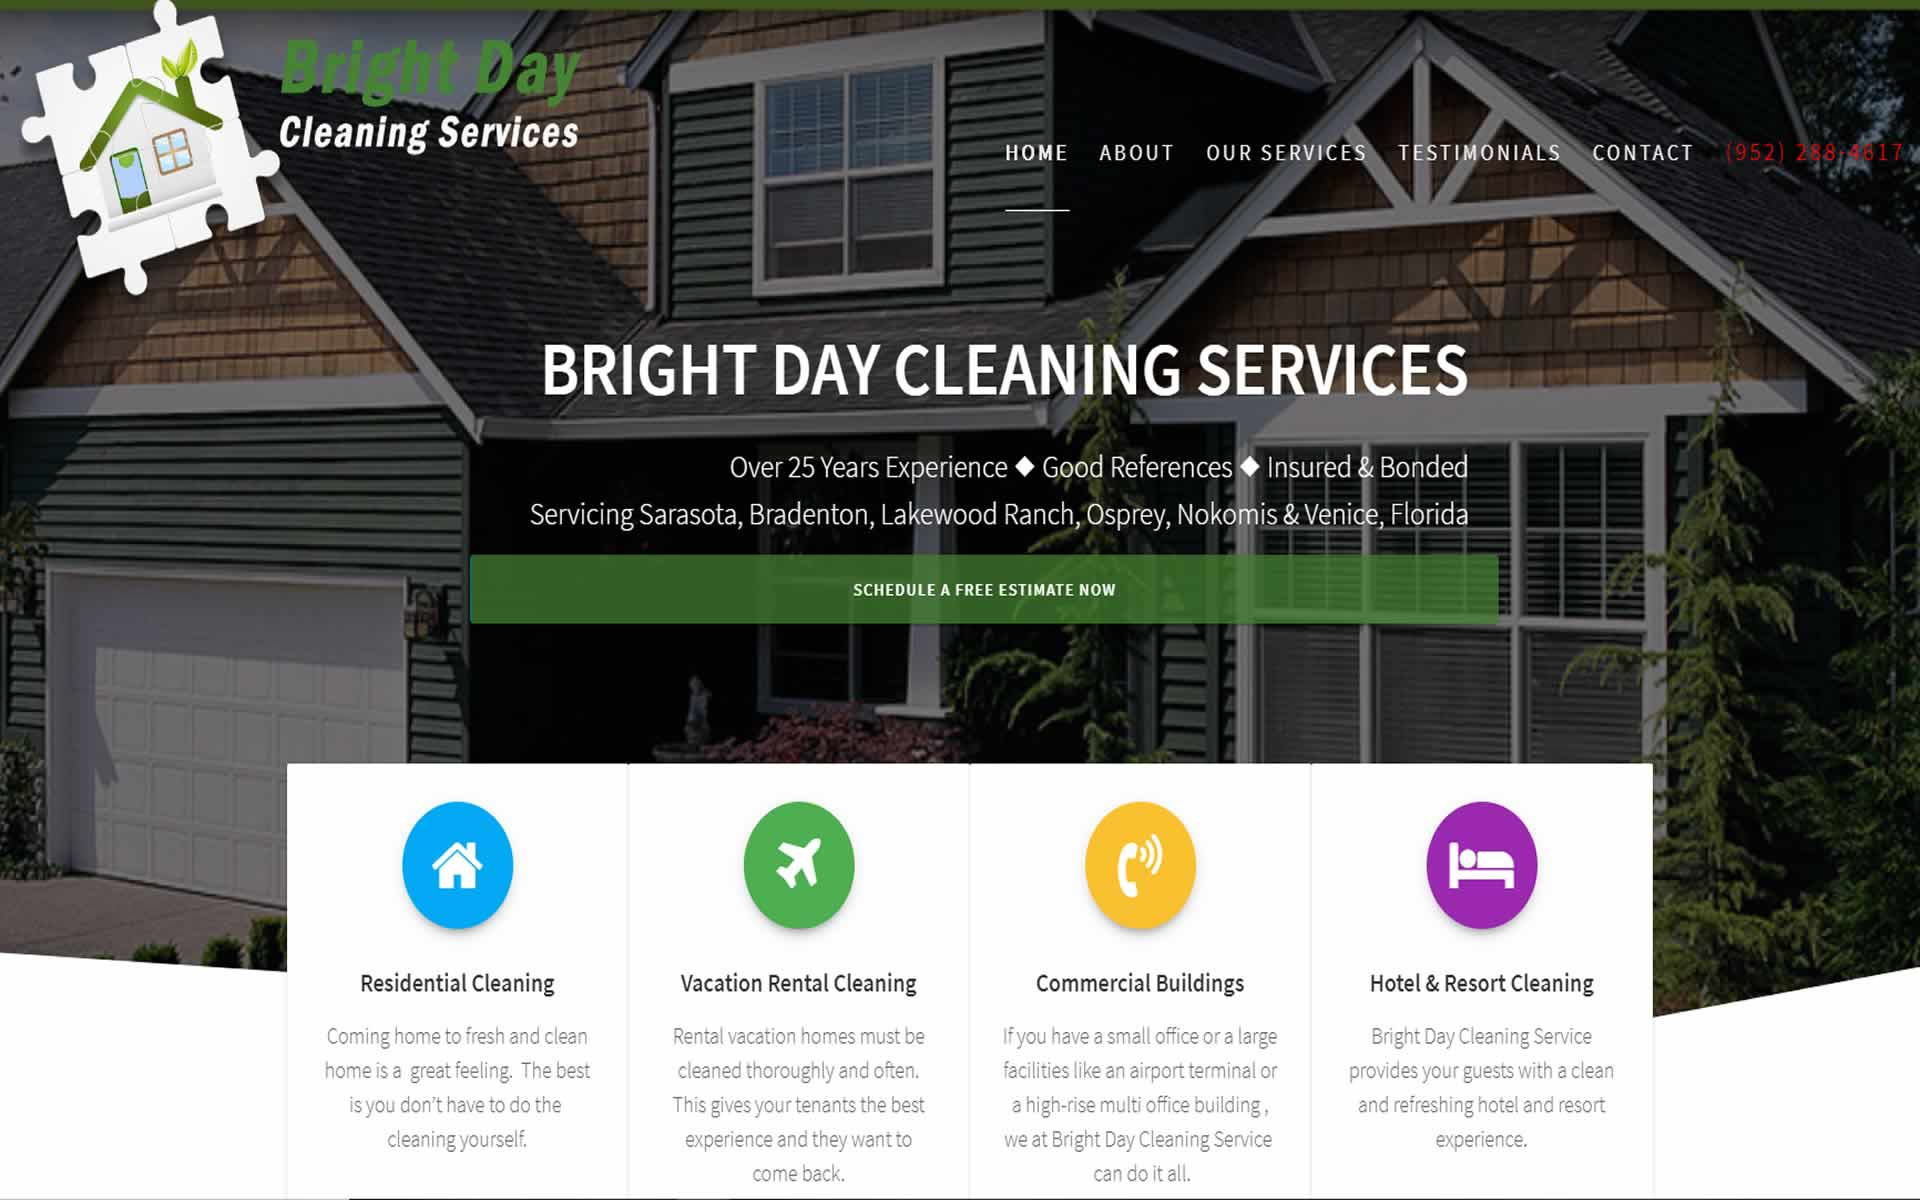 Bright Day Cleaning Service